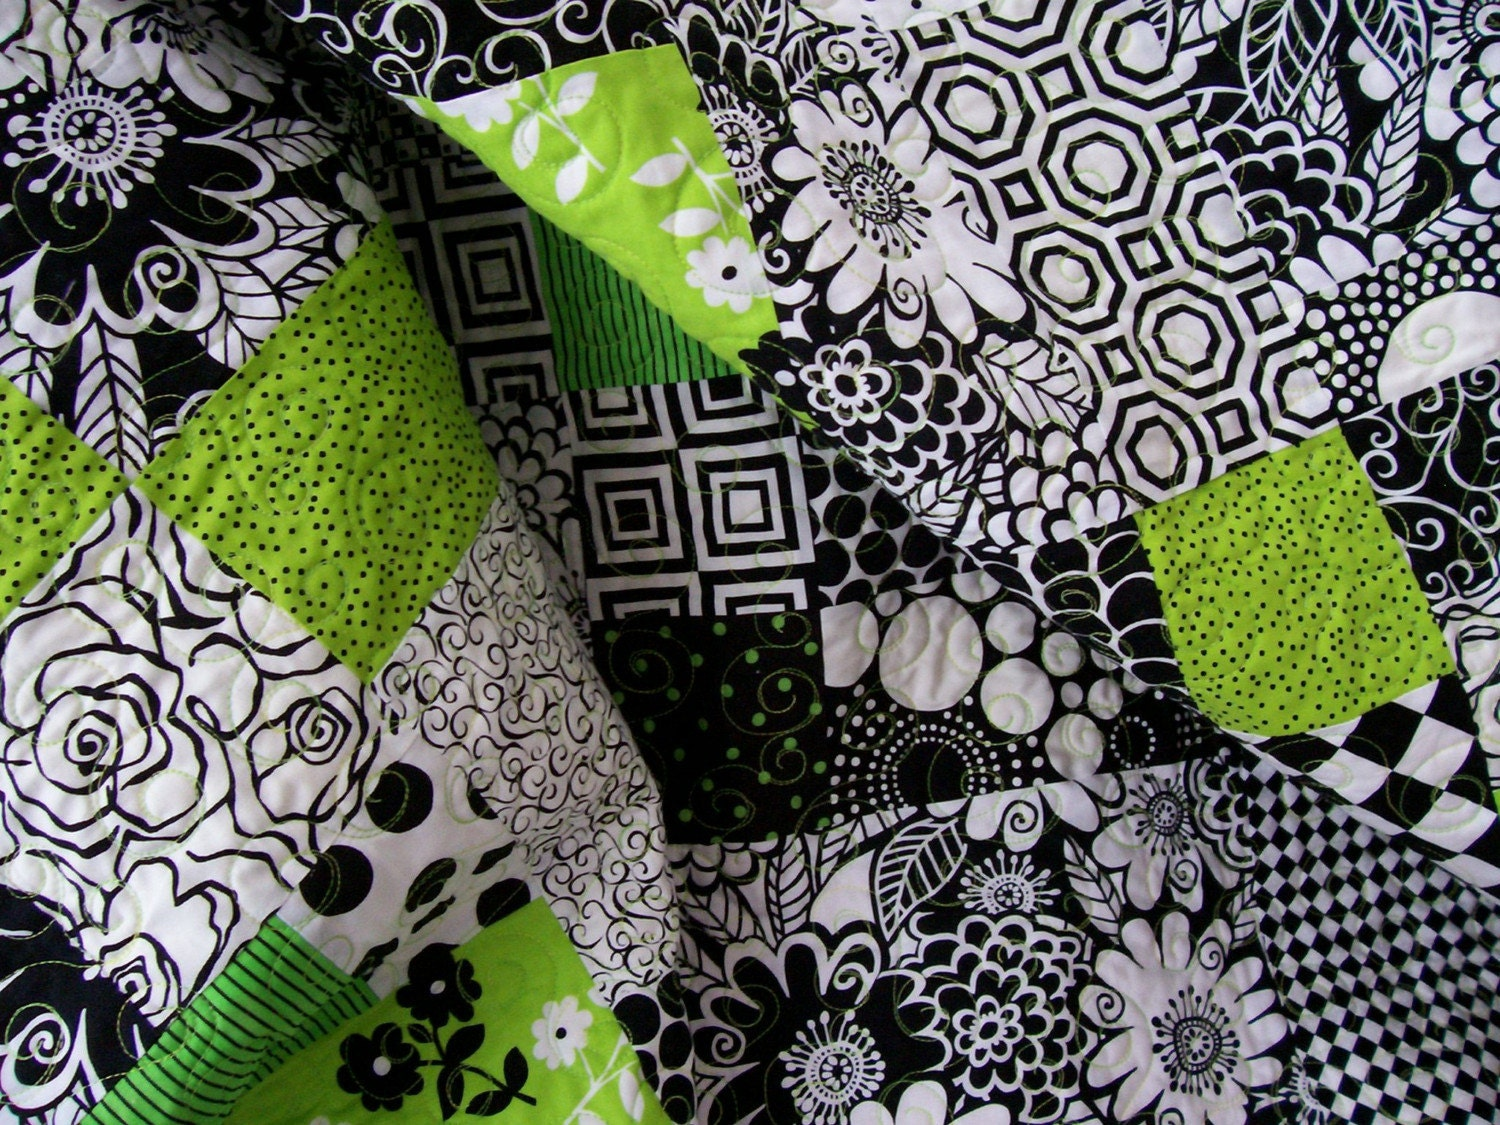 Lap Quilt Modern Black White And Lime Green Free U S